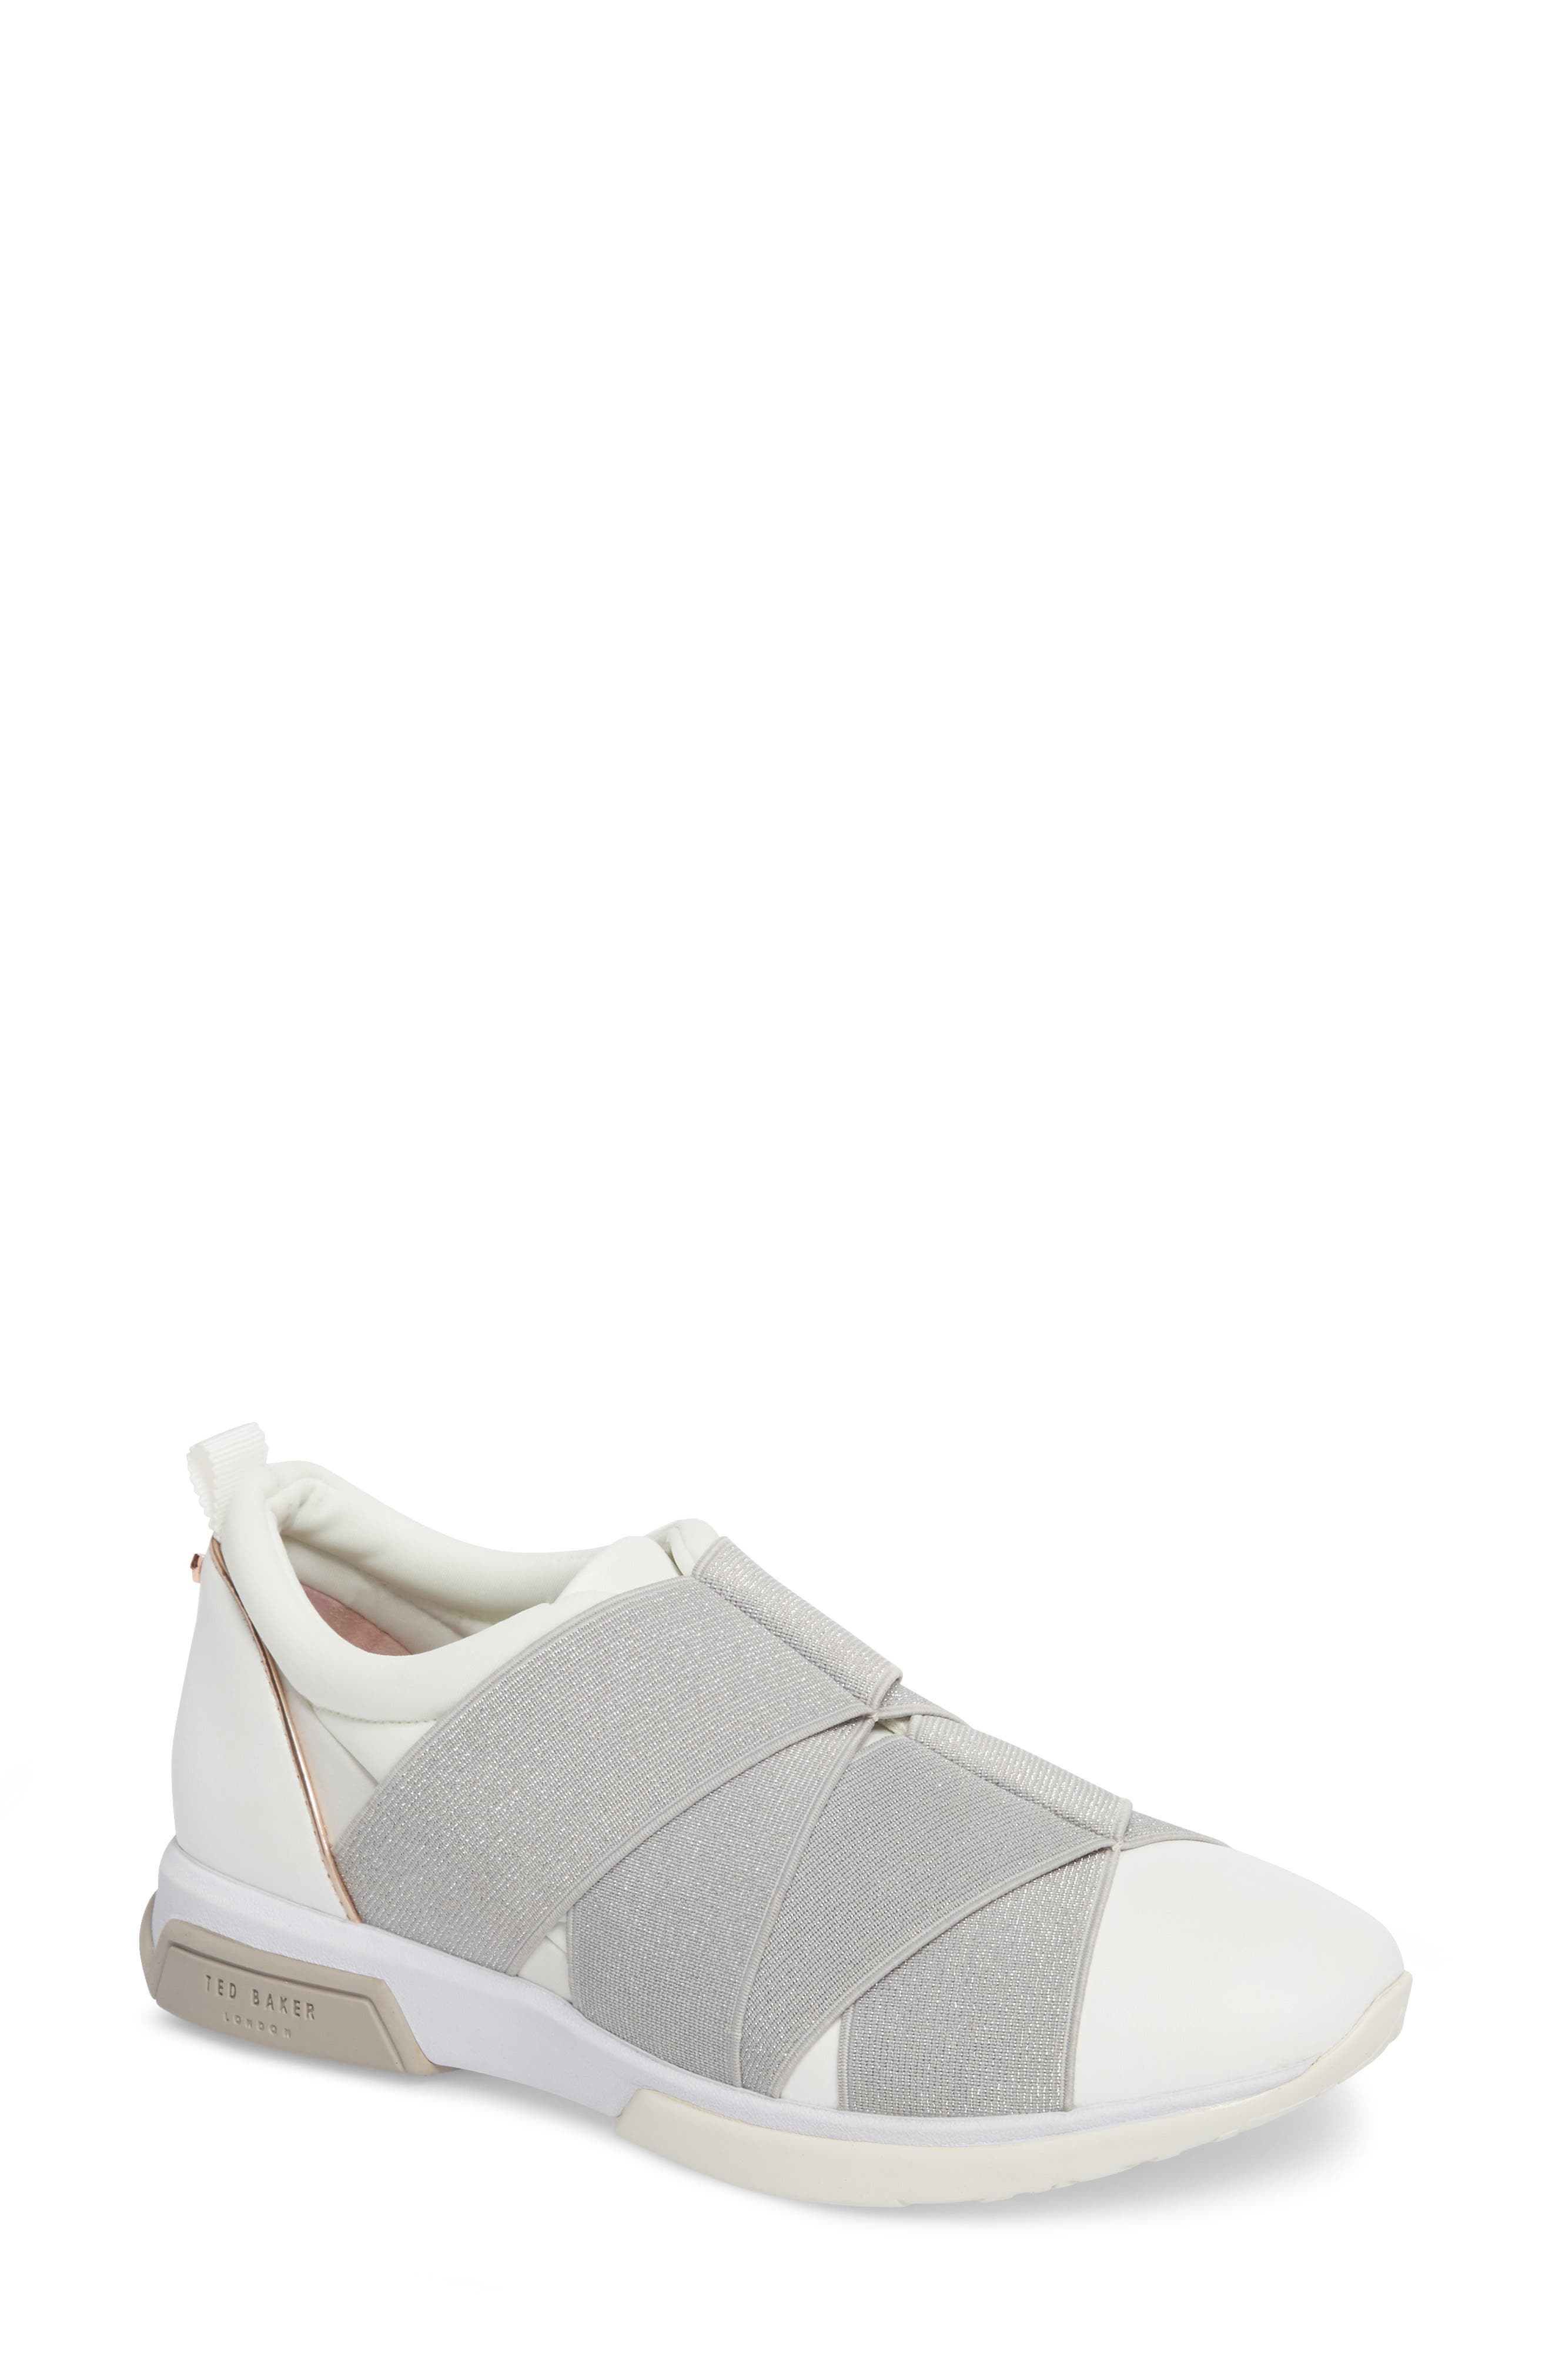 TED BAKER LONDON Queane Sneaker, Main, color, WHITE/ SILVER LEATHER